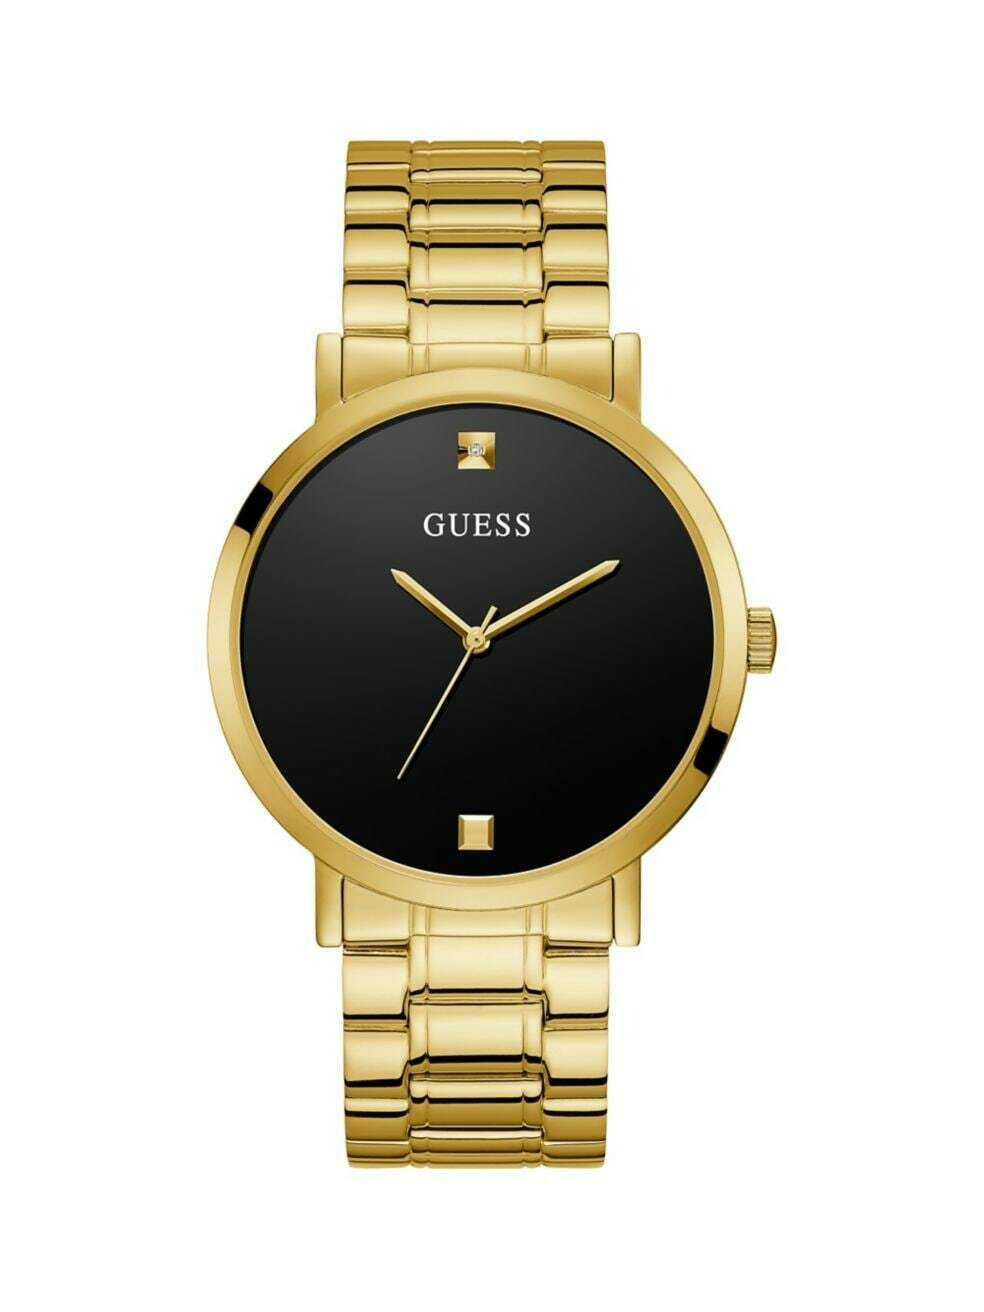 GUESS GNTS WATCH W/BLK DIAL & GOLD TONE STRAP